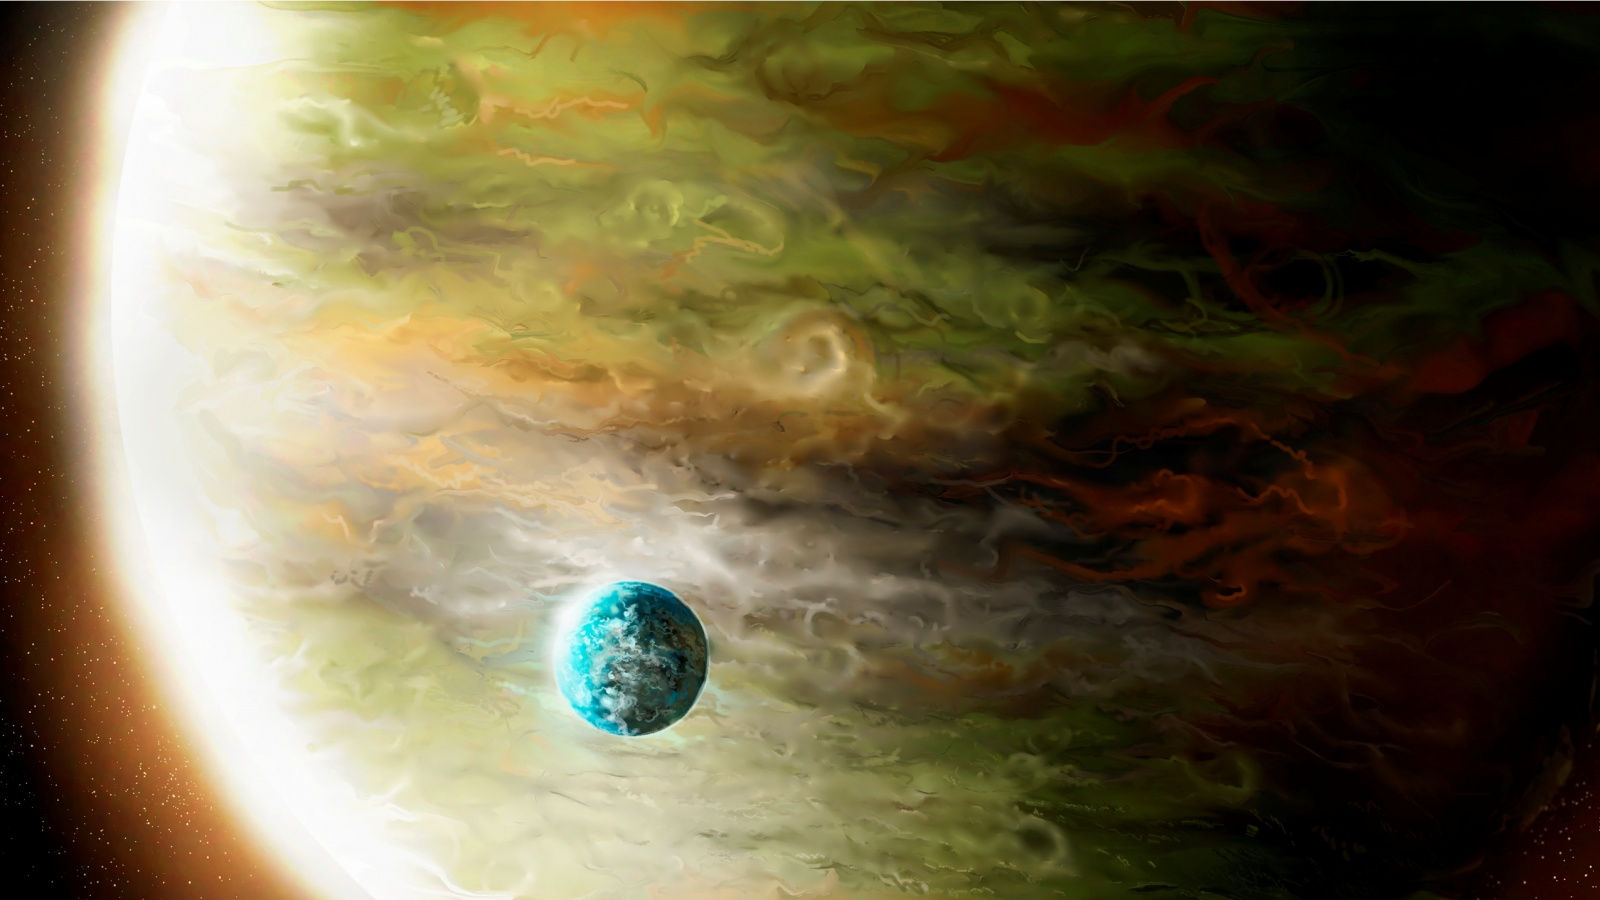 wallpapers of giant planets - photo #12